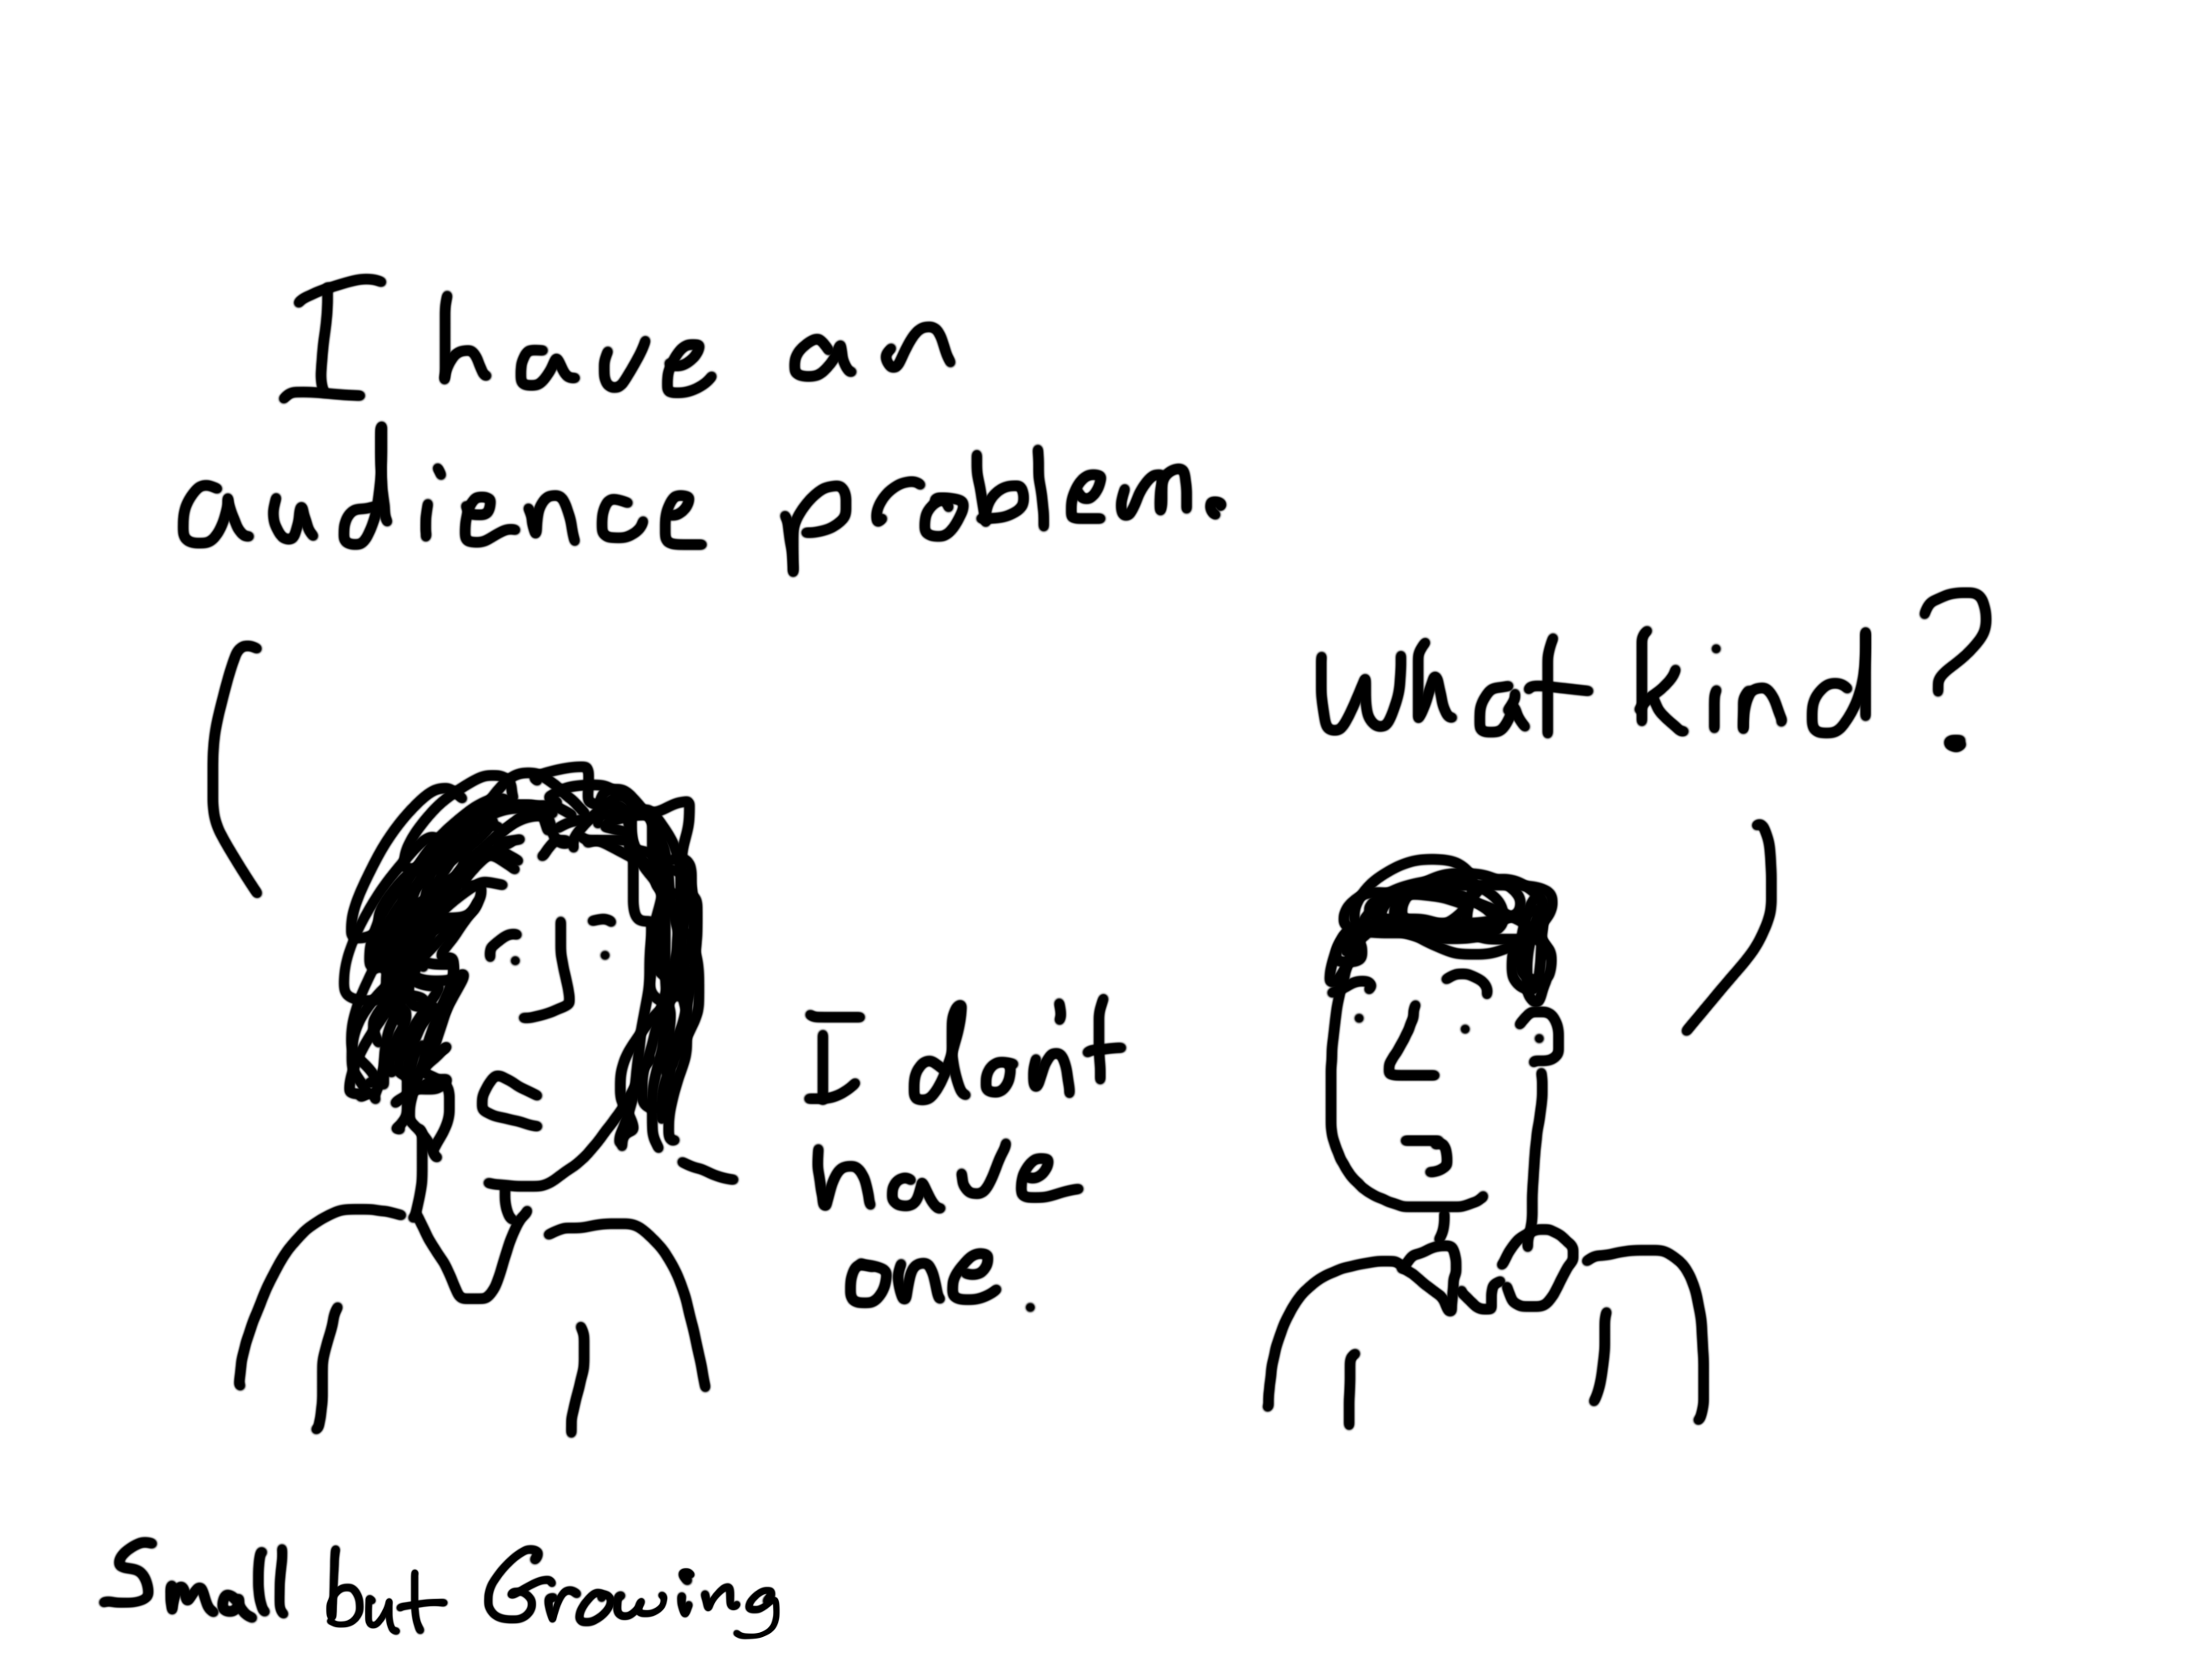 I have an audience problem. What kind? I don't have one. Cartoon by Chris lysy